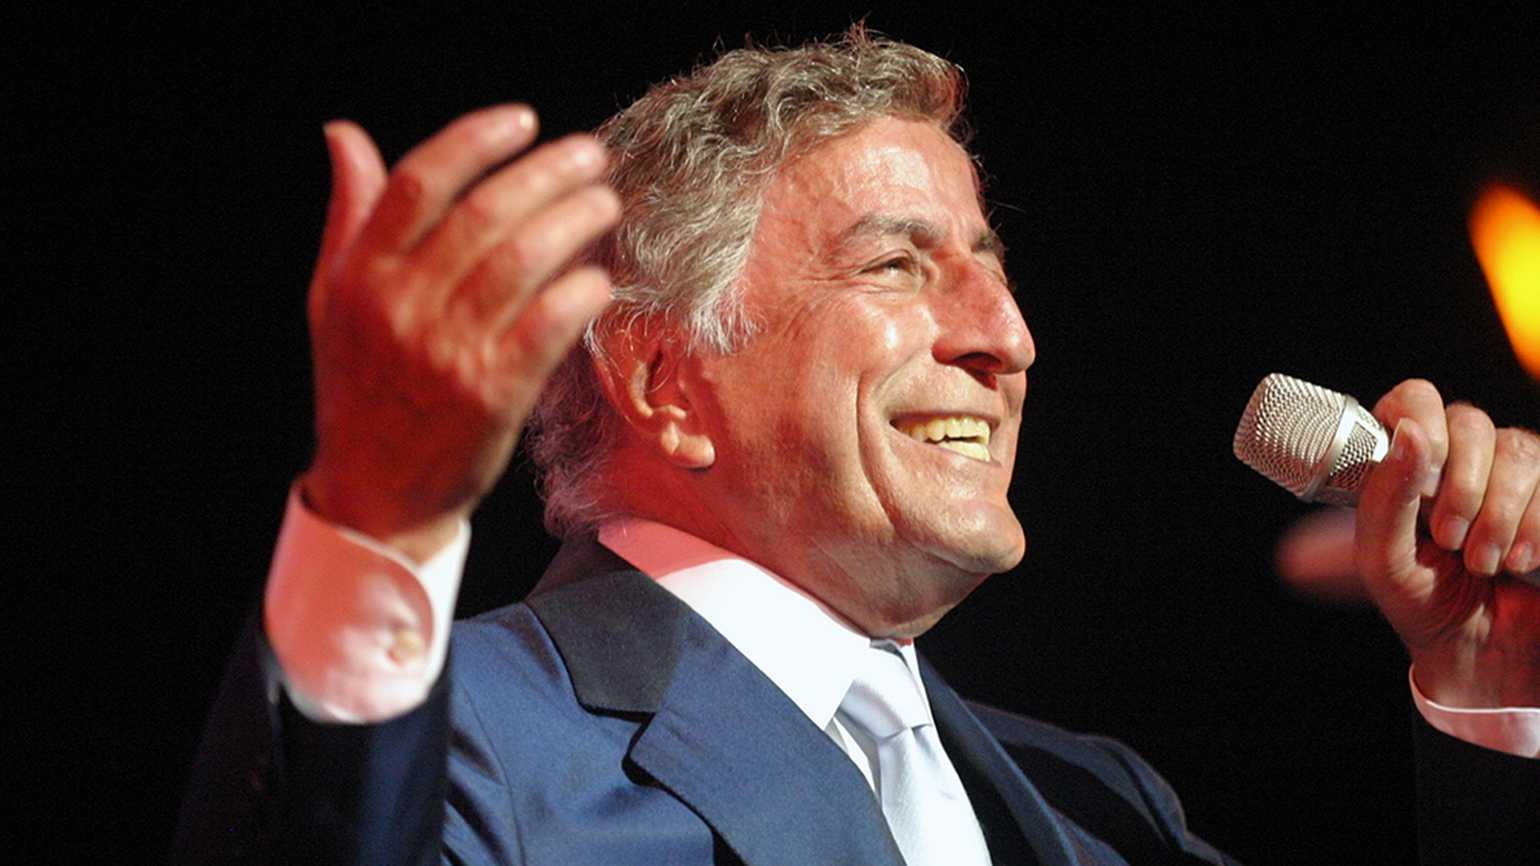 Singer Tony Bennett; photograph courtesy Tom Beetz via Creative Commons